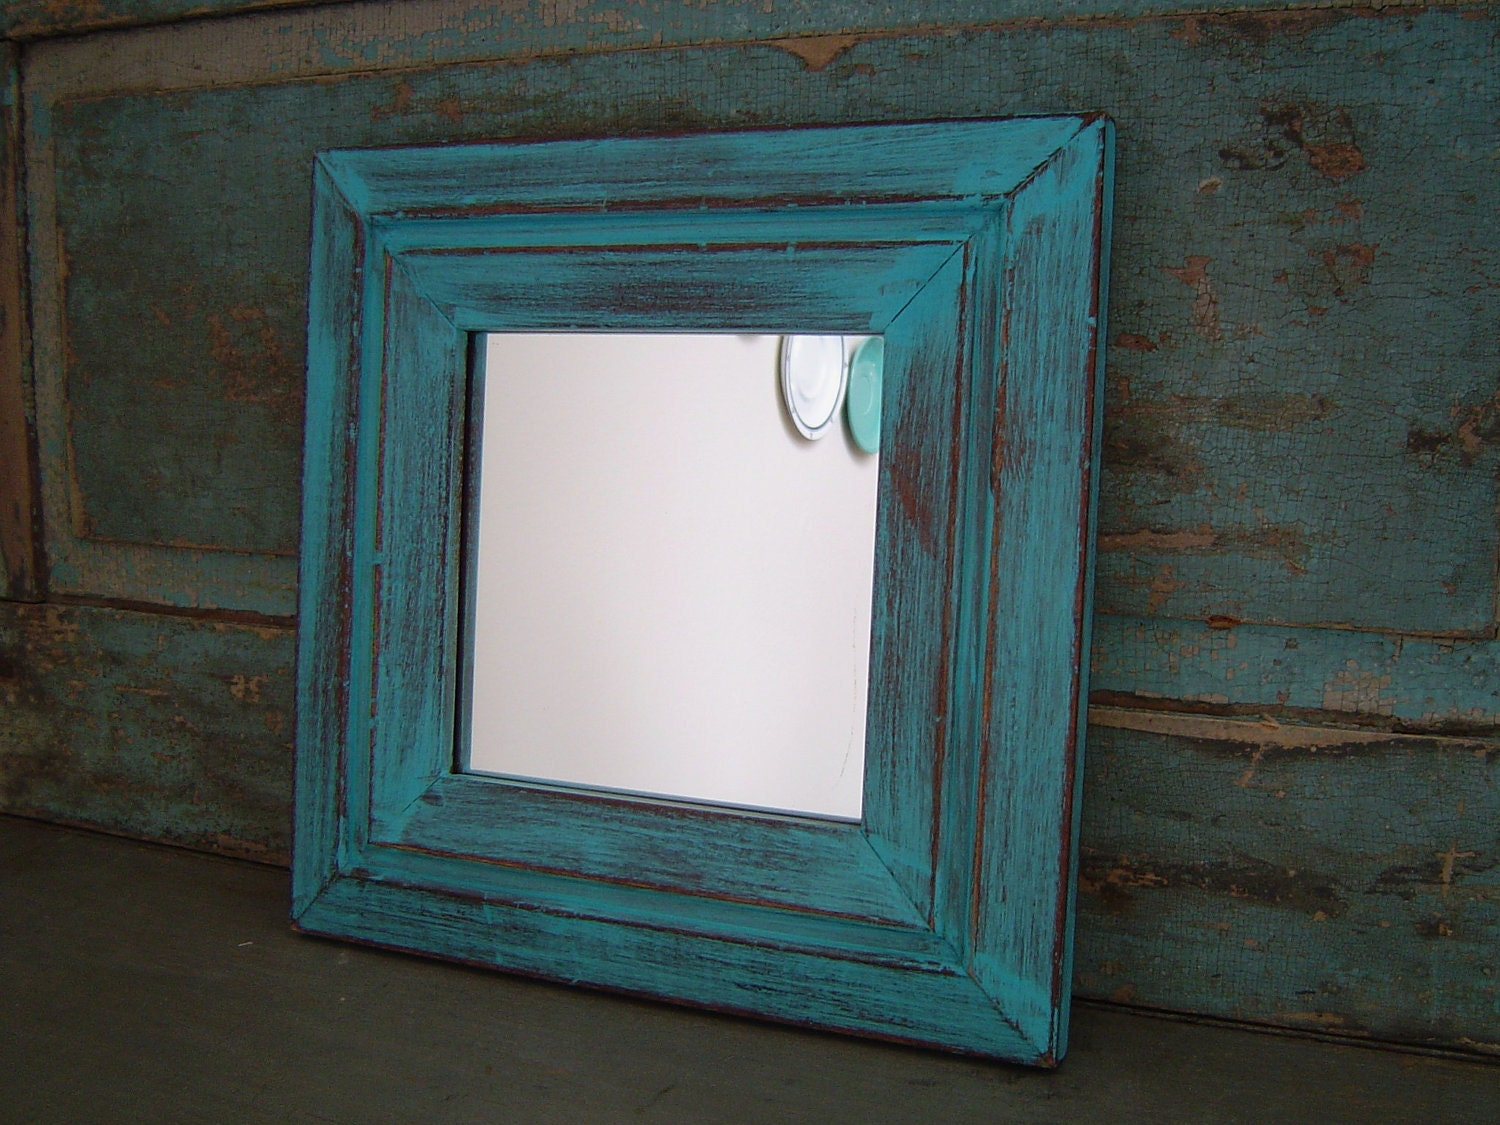 mirror wood frame turquoise distressed by turquoiserollerset